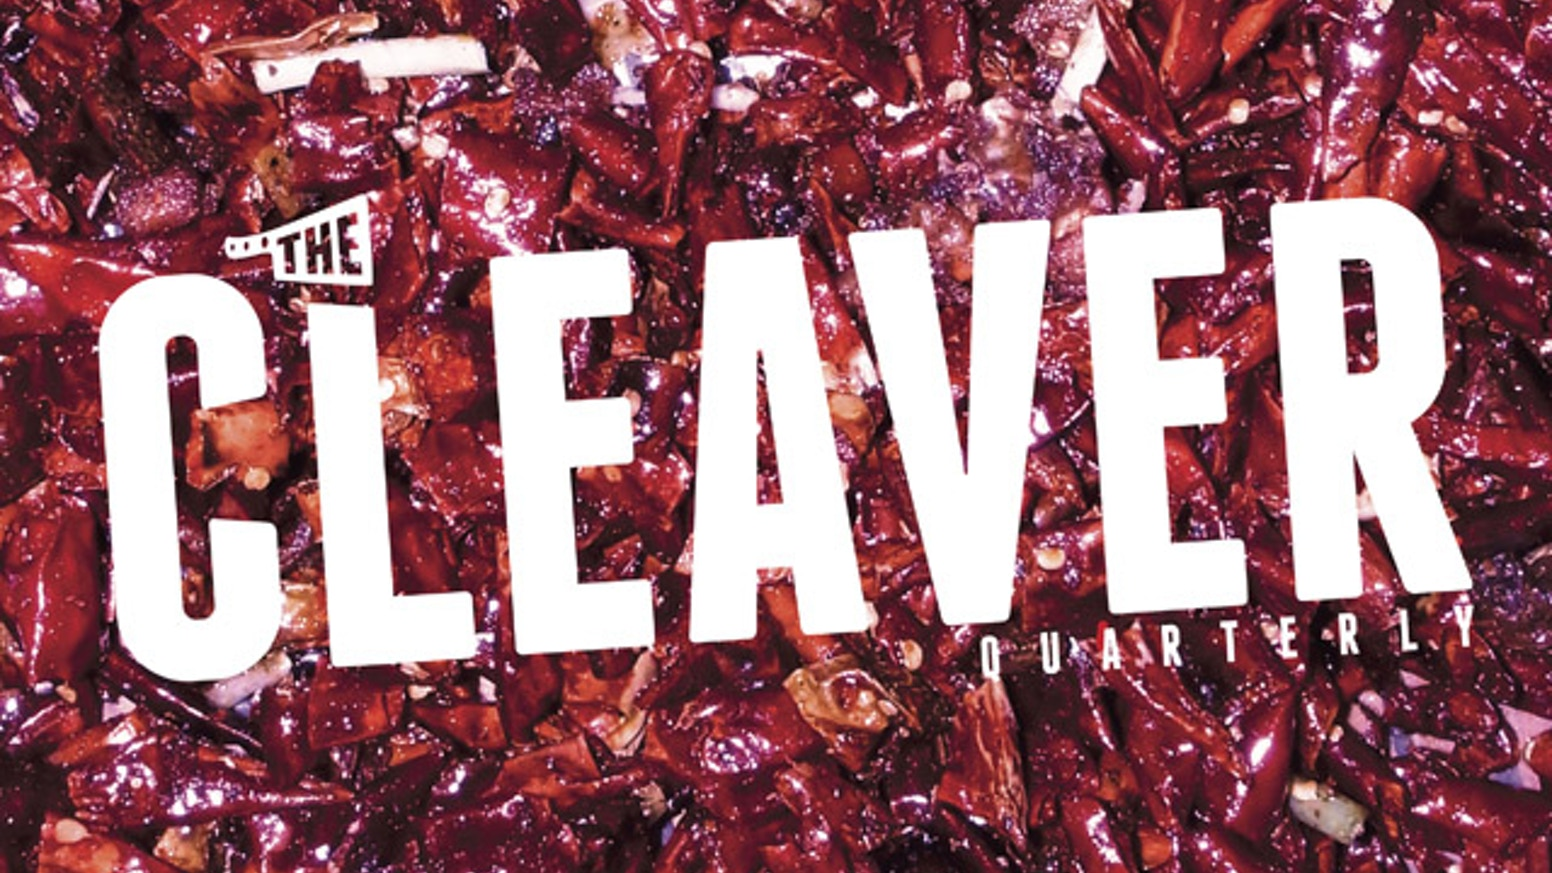 The Cleaver Quarterly is a magazine dedicated to telling the stories of Chinese food around the world.